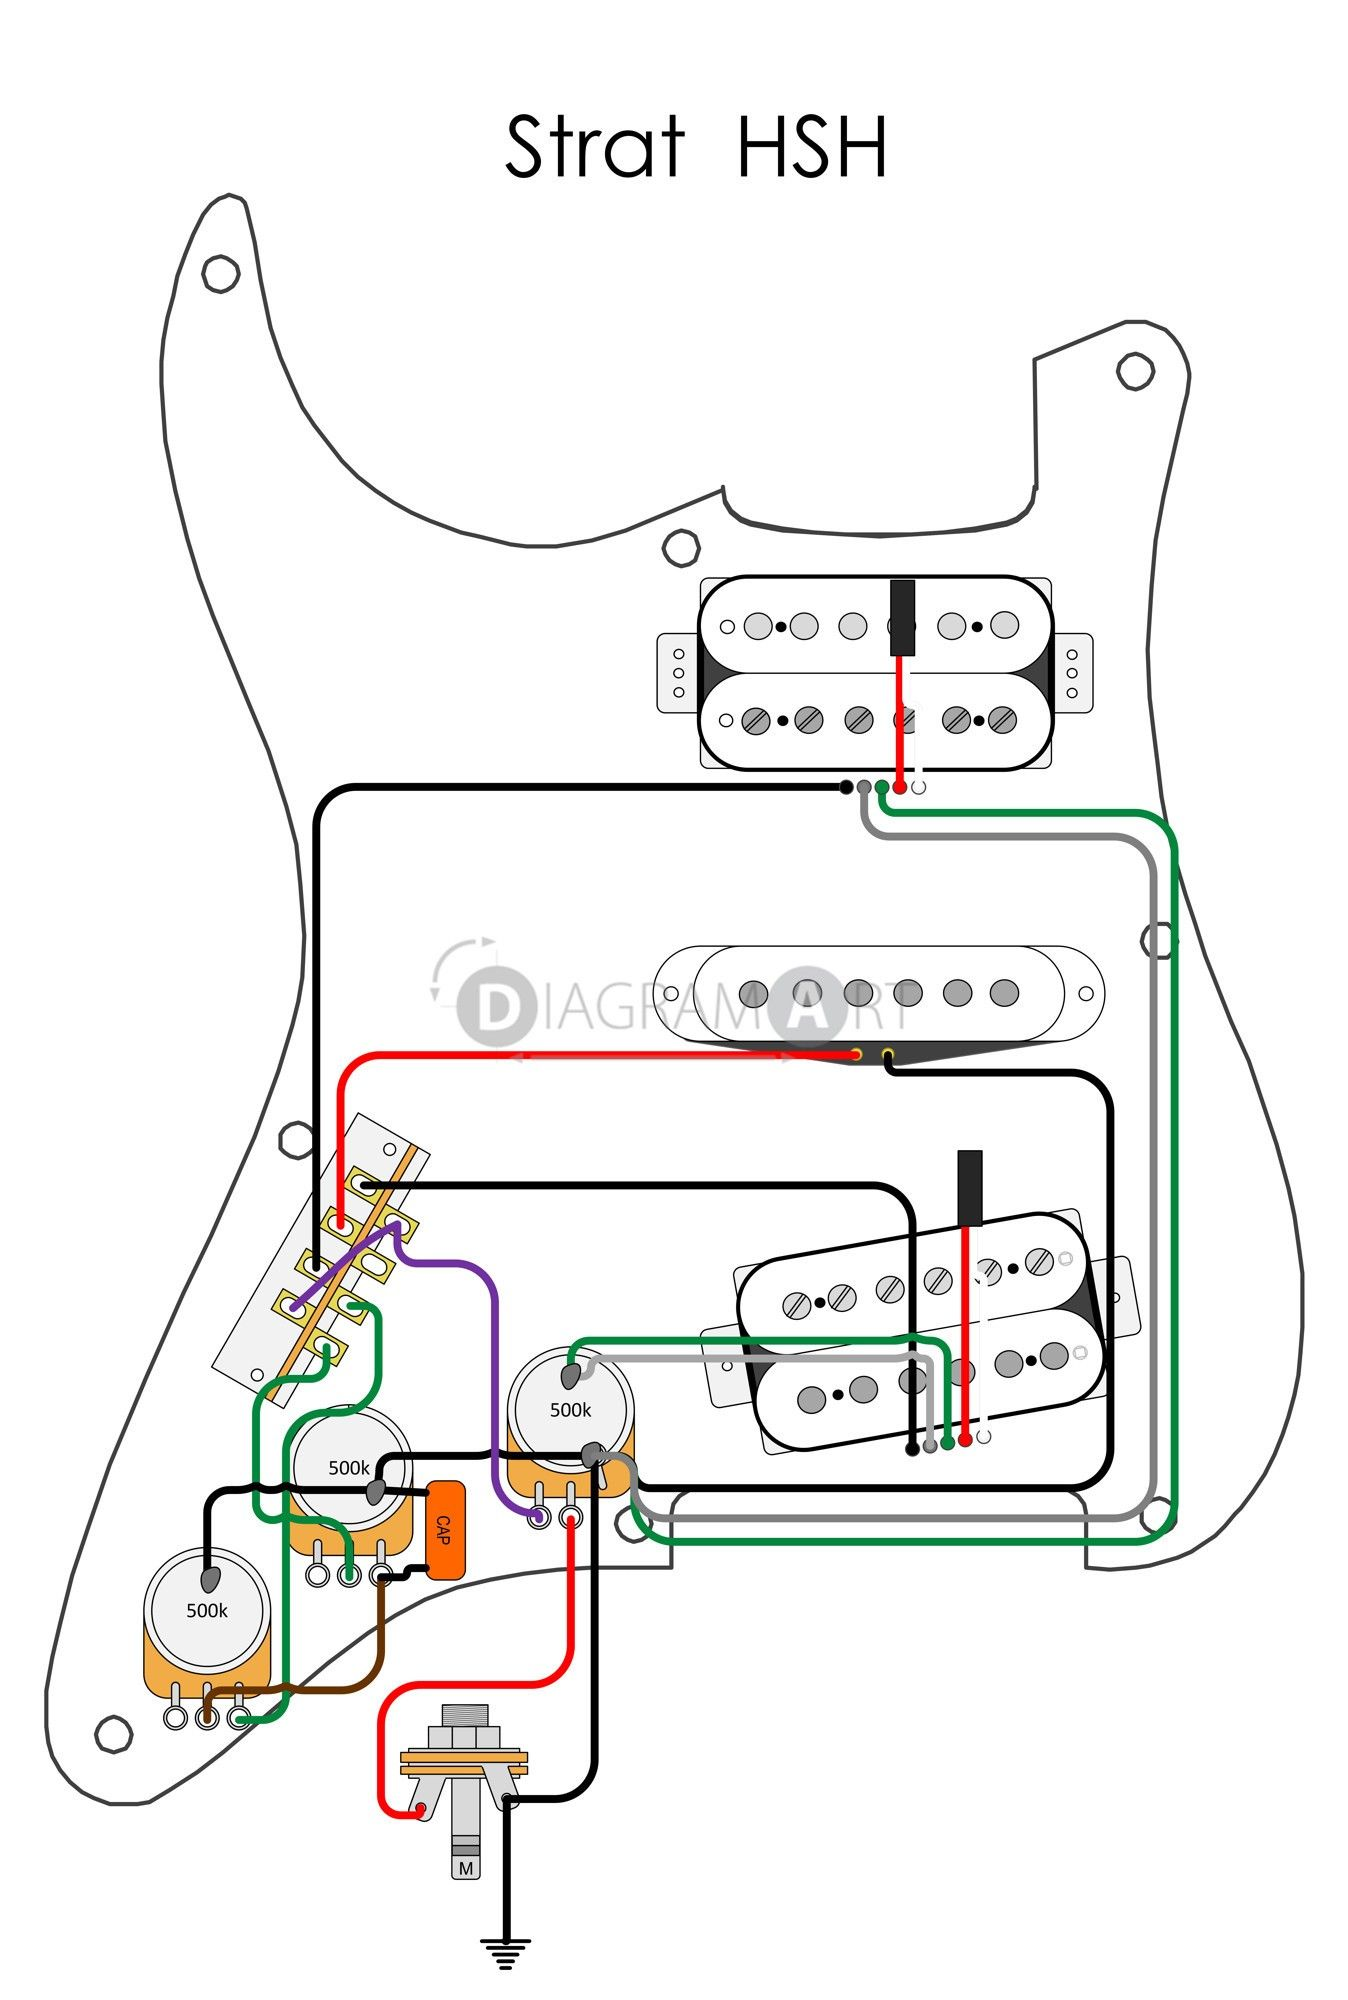 Wiring Diagram Fender Strat 5 Way Switch New Sss Strat S1 Diagram Data Wiring Diagrams Morningculture Co Stratocaster Guitar Luthier Guitar Guitar Pickups